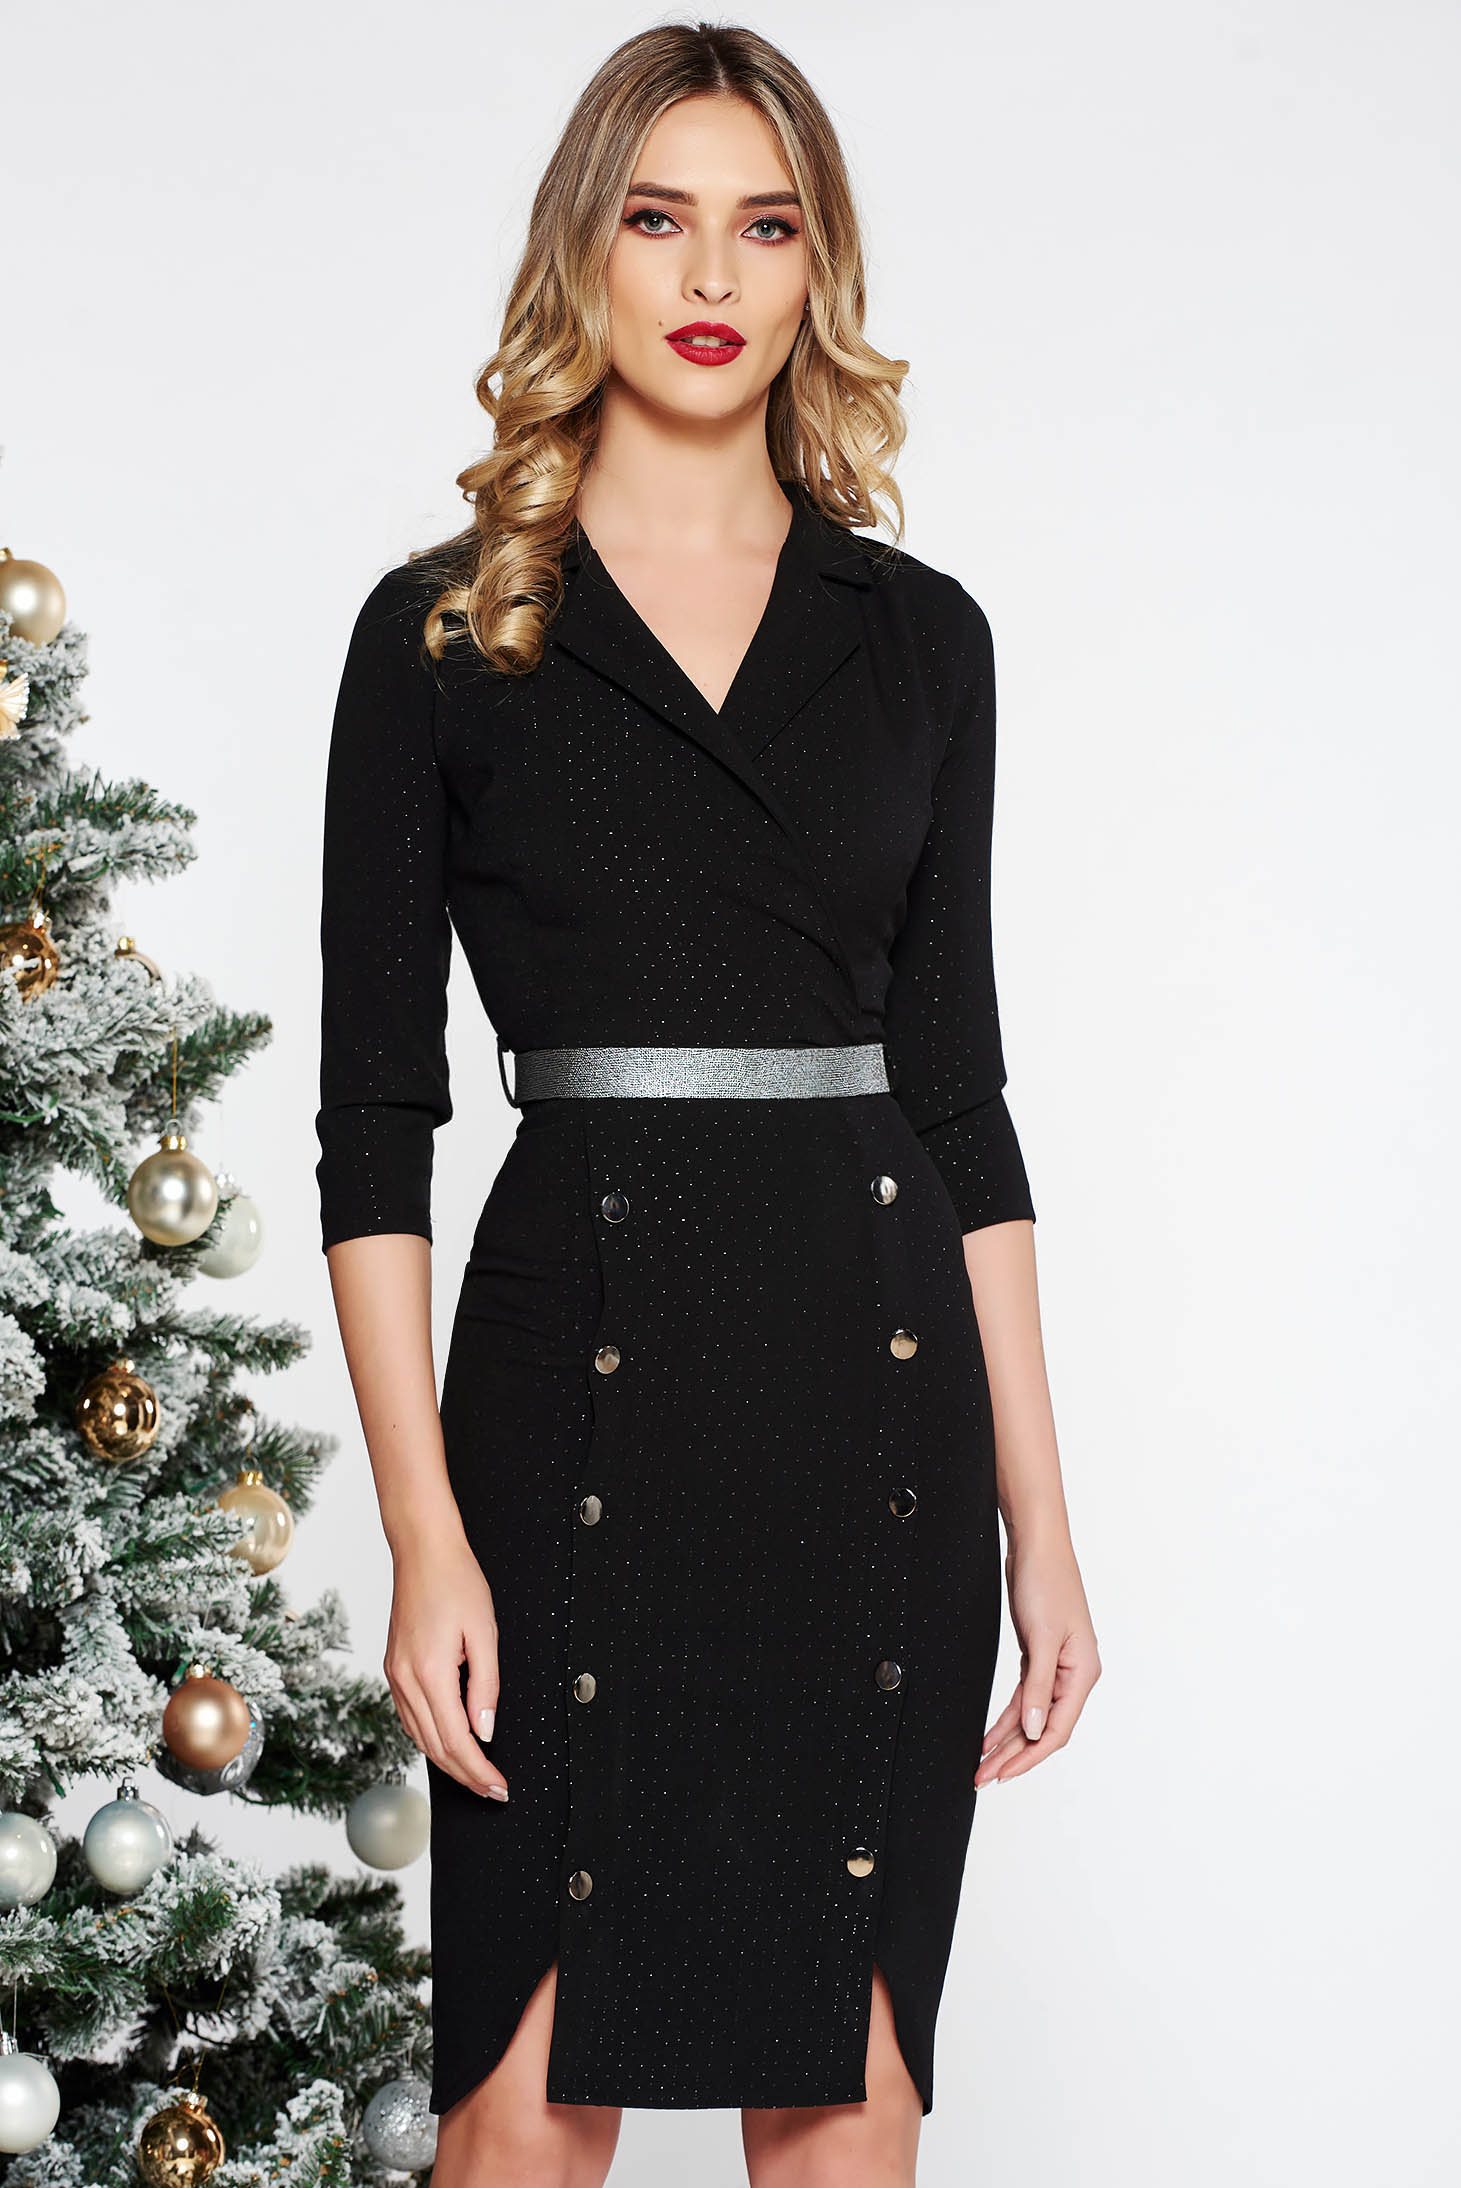 1cc31ae8bbb fofy-black-elegant-midi-dress-slightly-elastic-fab-S041113-2-401364.jpg